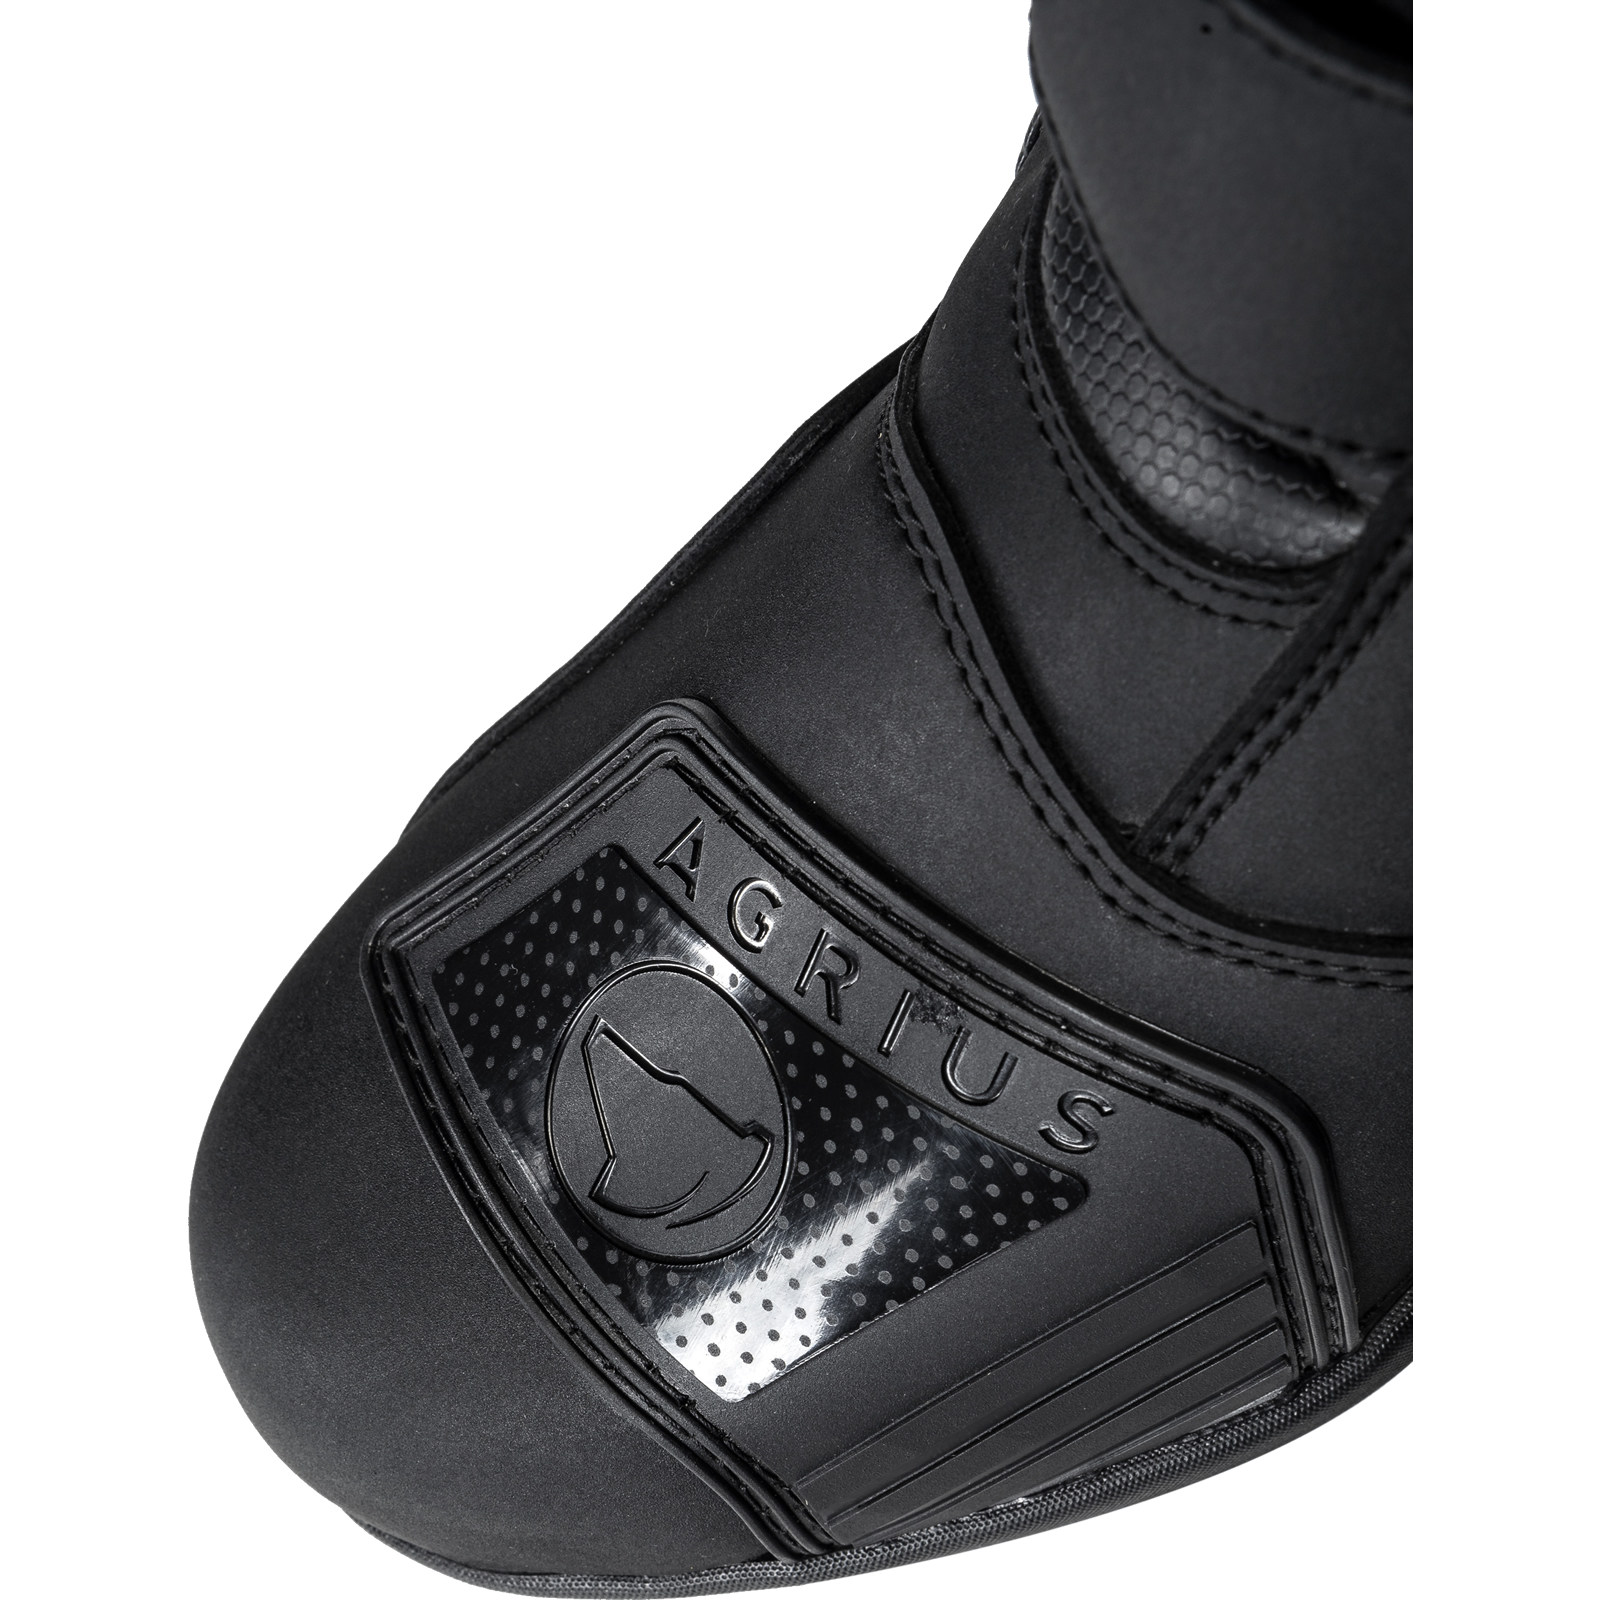 Agrius Chaos WP Adventure Mid Motorcycle Boots Waterproof Motorbike Touring